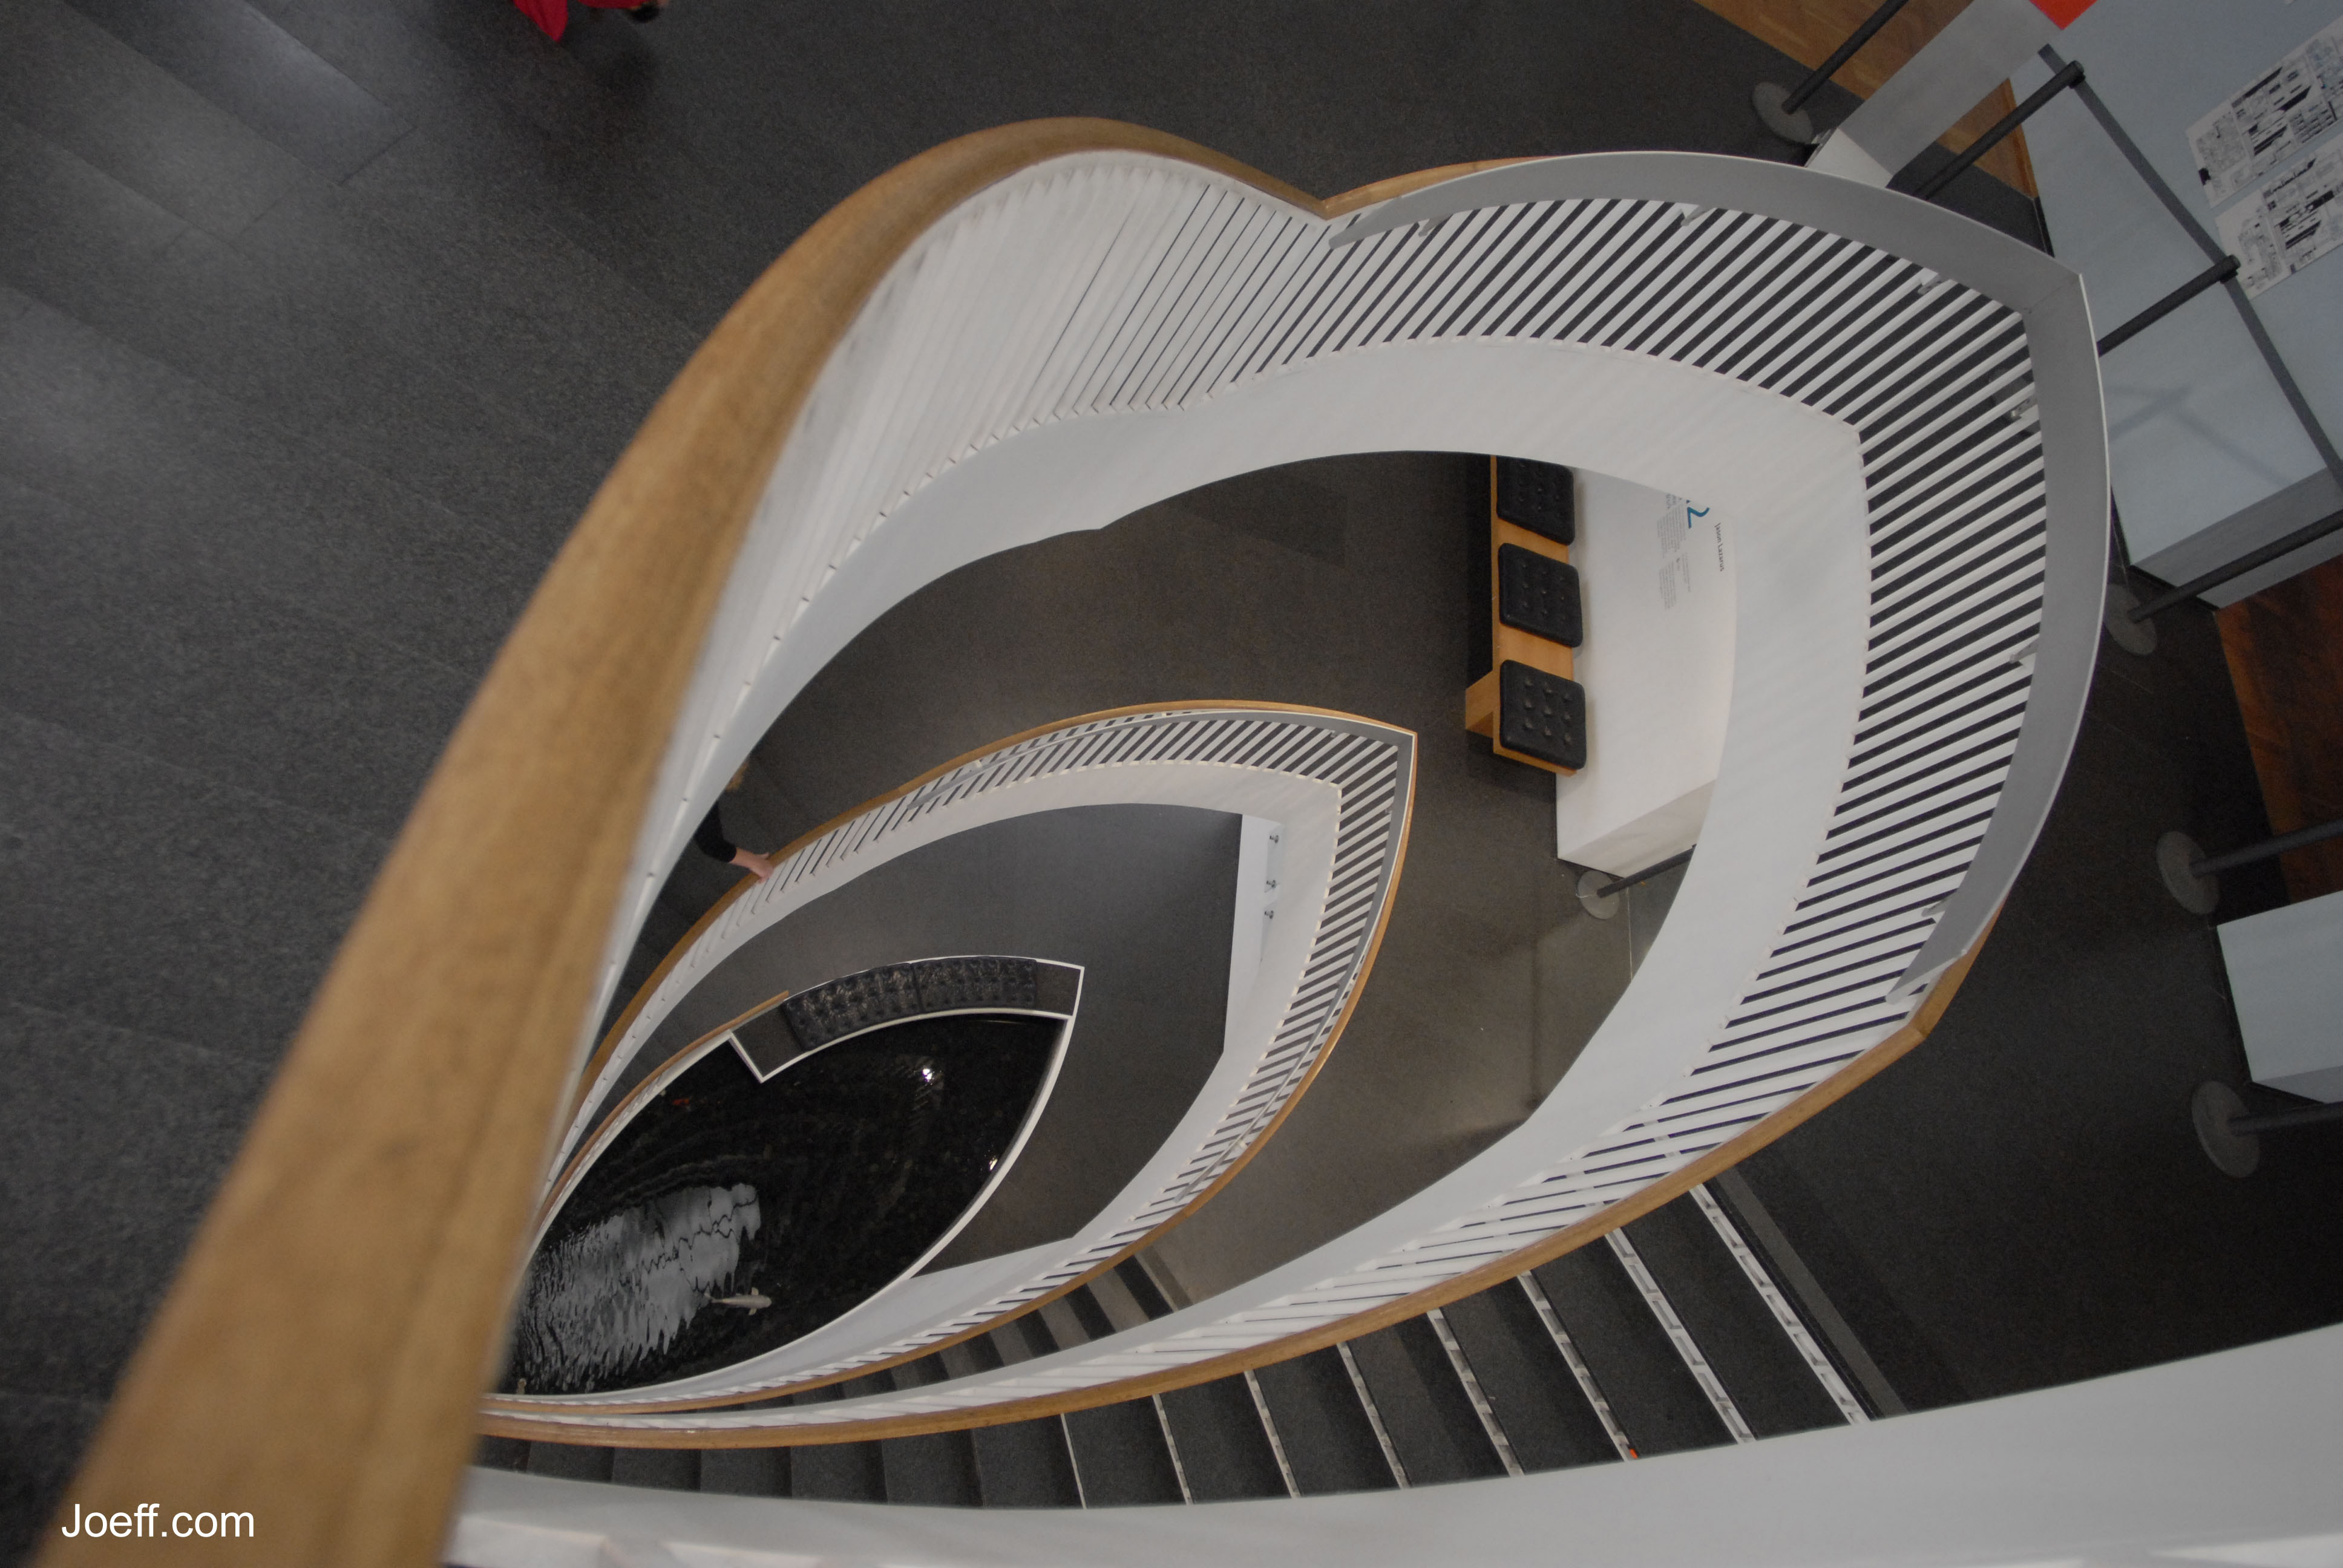 Name the name of the cat's-eye staircase